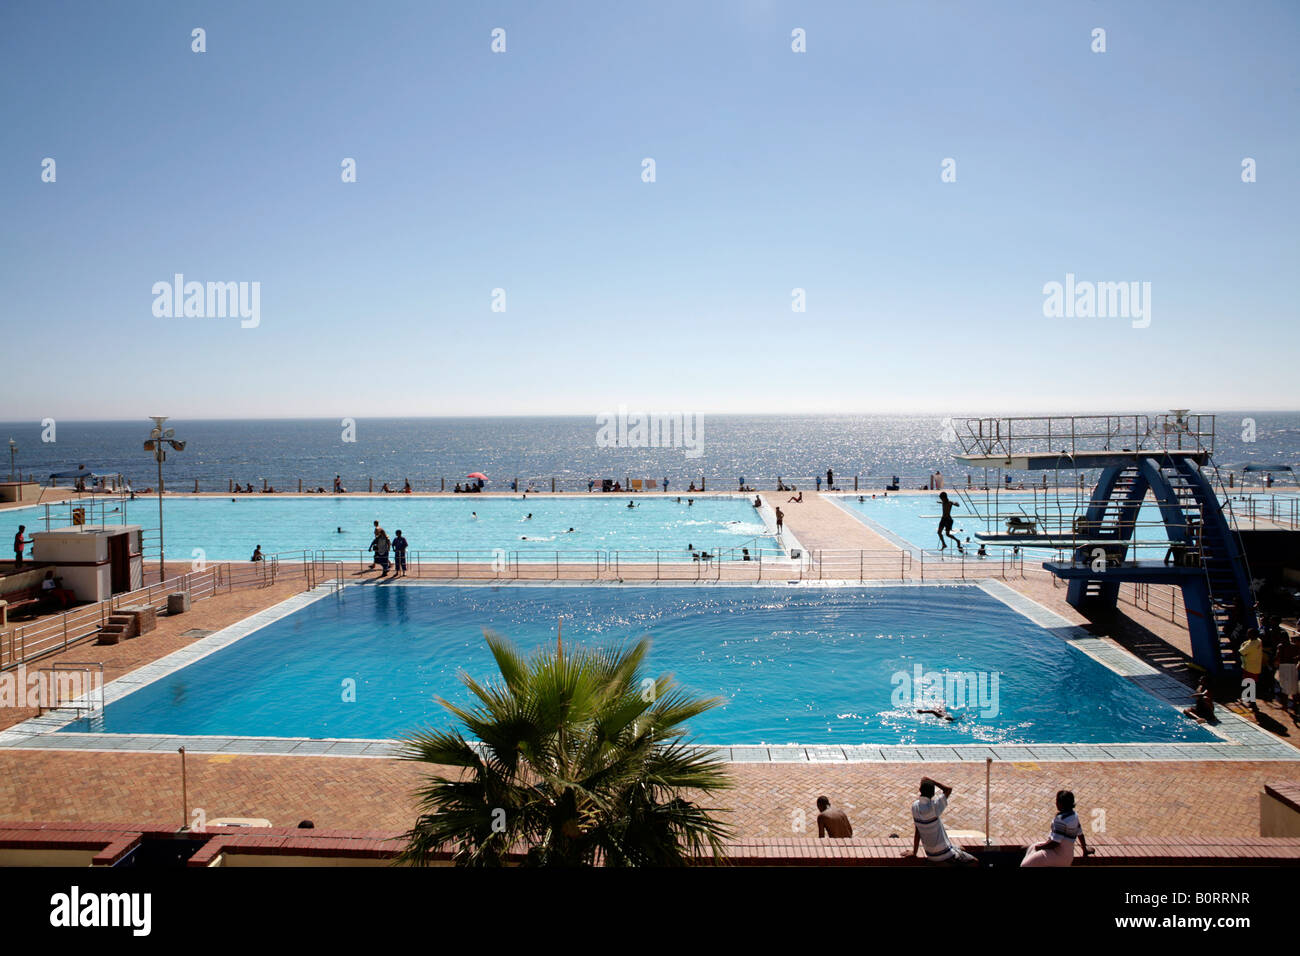 Sea Point Public Swimming Pools Cape Town South Africa Stock Photo Royalty Free Image